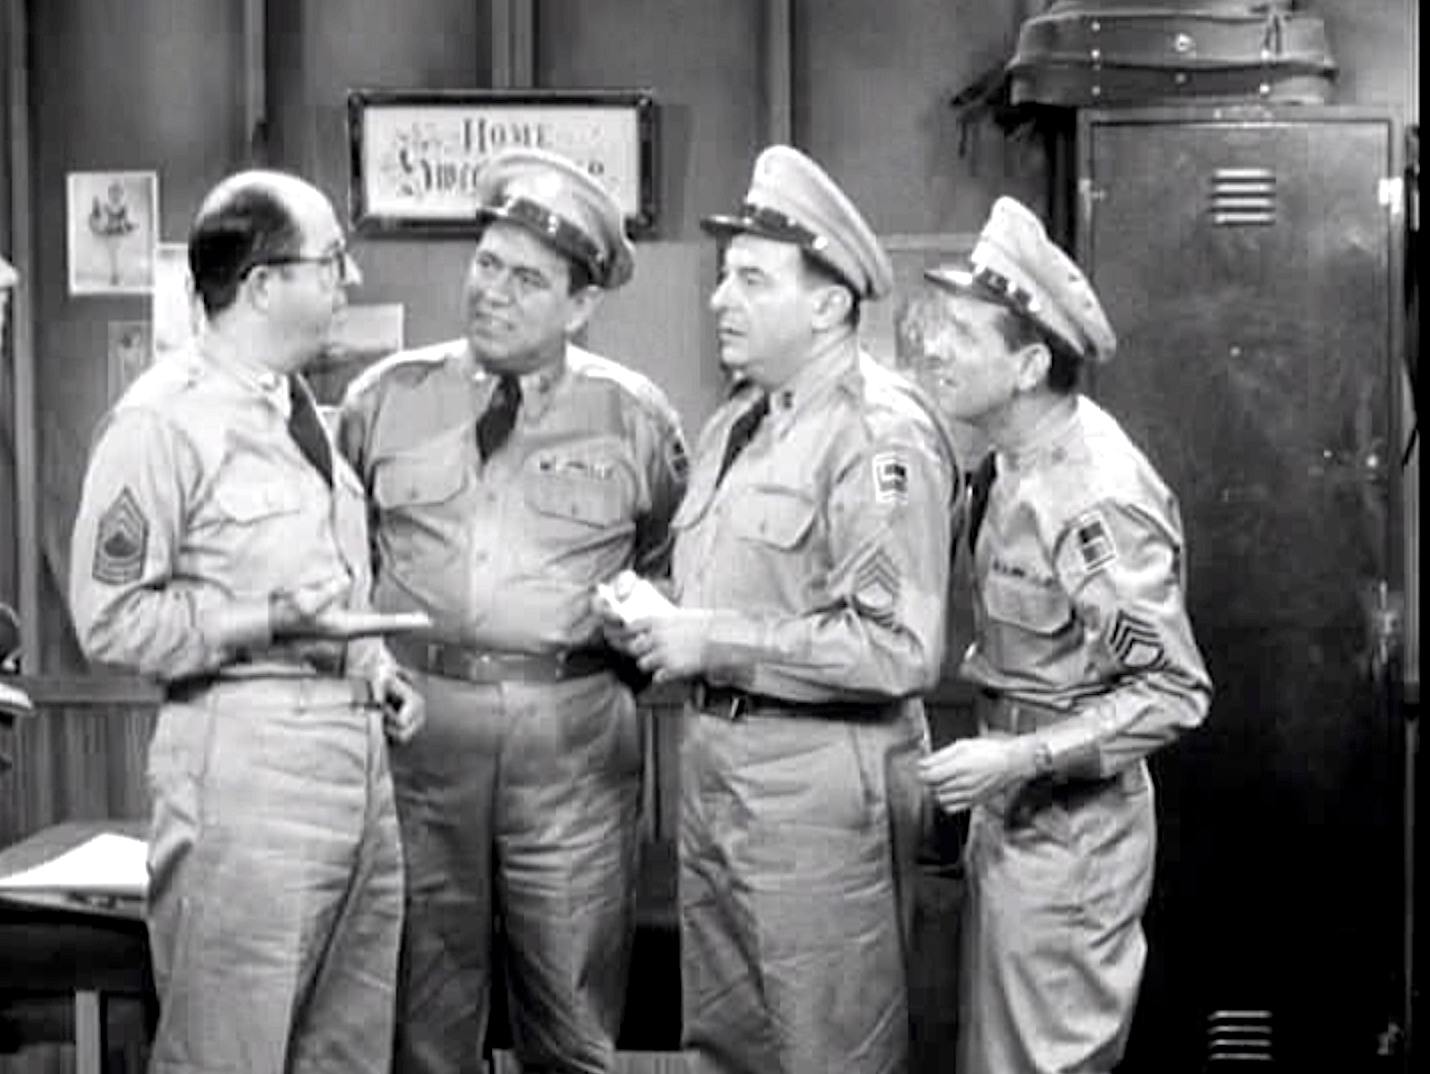 The Phil Silvers Show : SE 01 Ep 13 : The Twitch